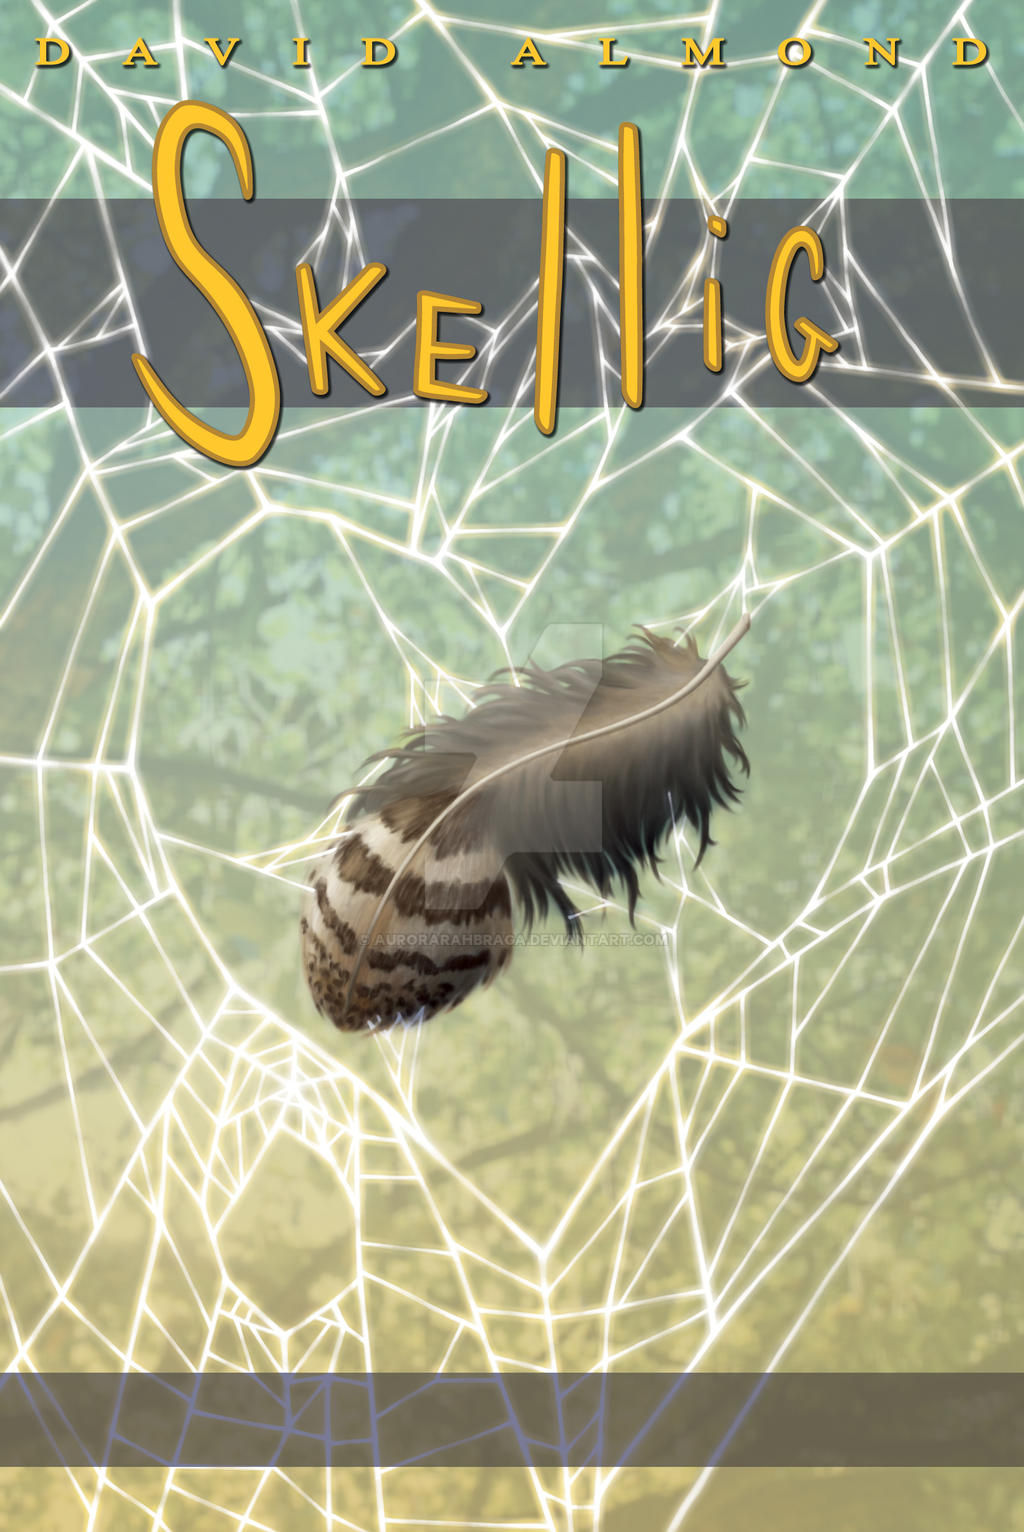 Book Cover Art Submissions : Skellig book cover by aurorarahbraga on deviantart